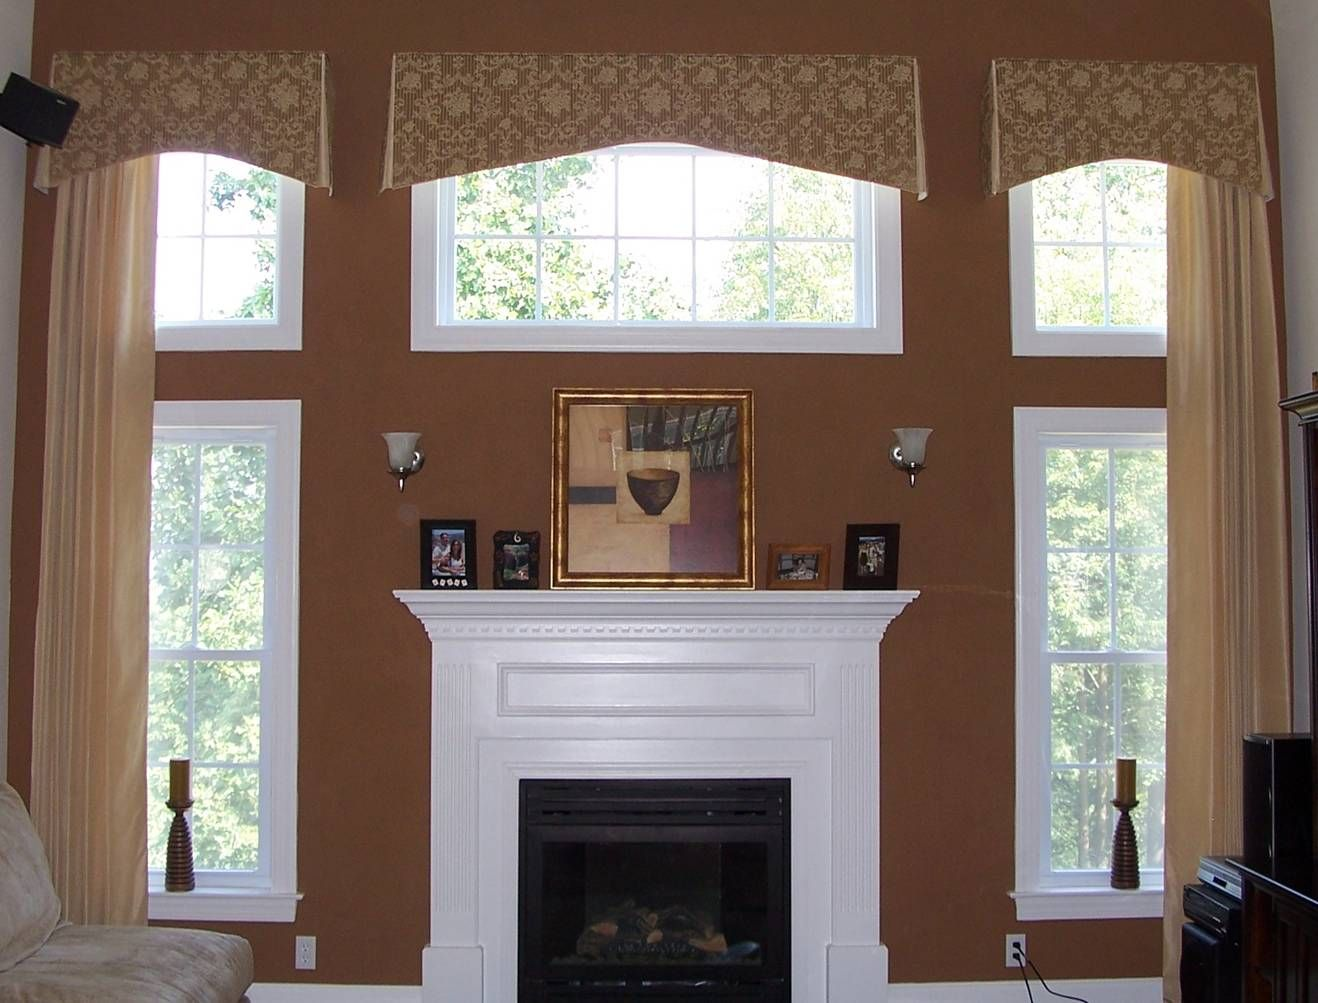 Window treatments for large kitchen windows - Shade Tree Interiors Handling 2 Story Windows With Center Window Above Fireplace Not Sure